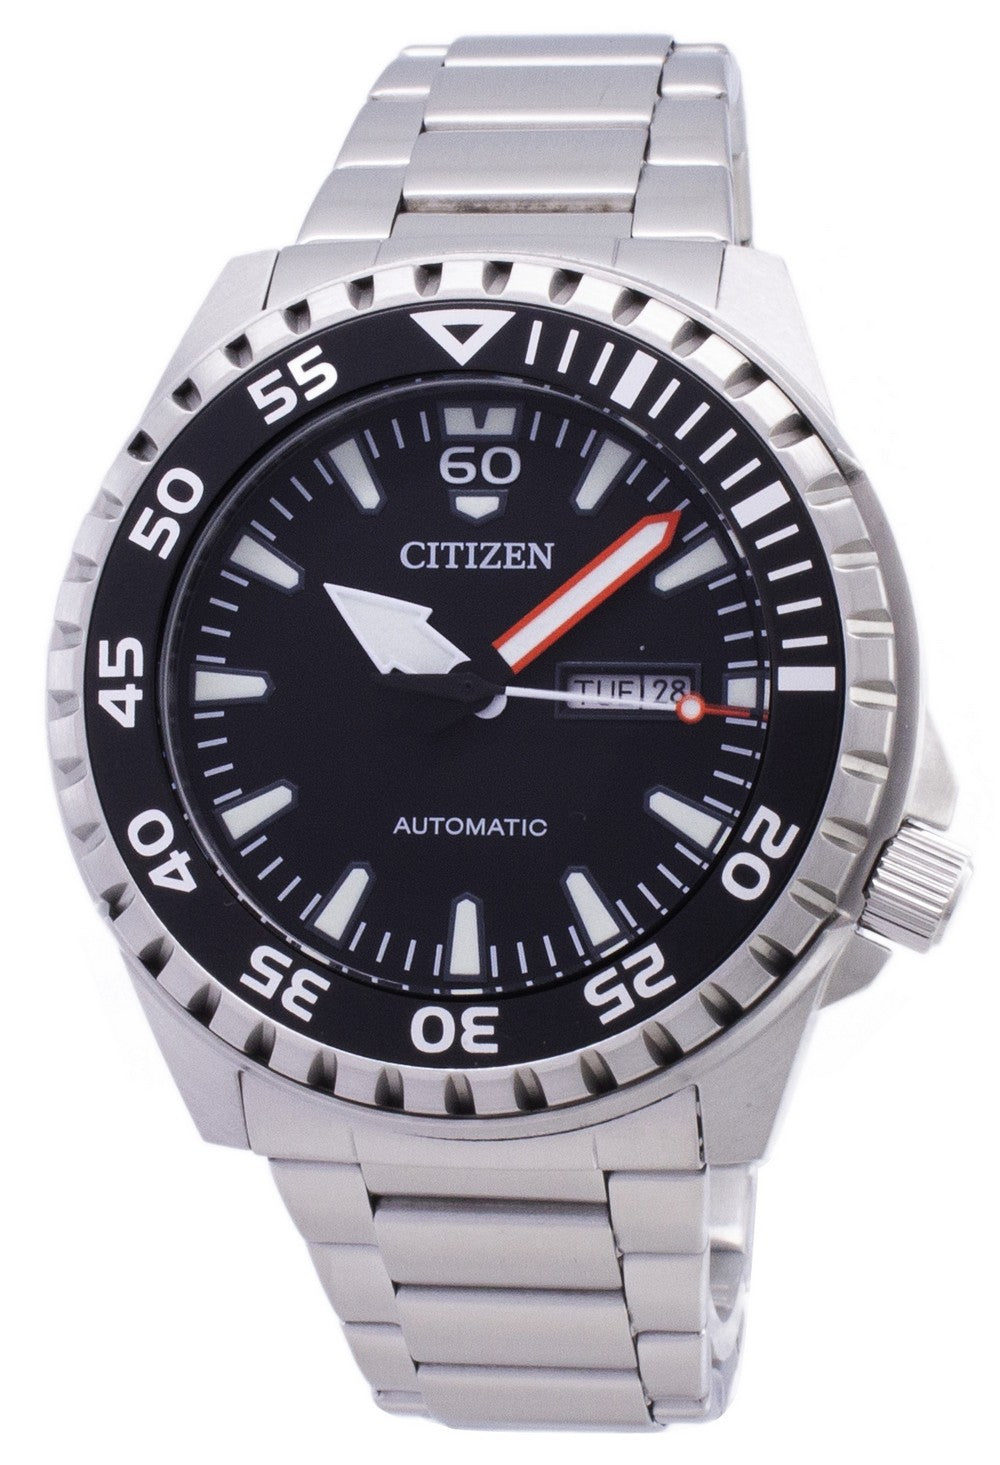 Citizen Mechanical Nh8388-81e Automatic Analog Men's Watch